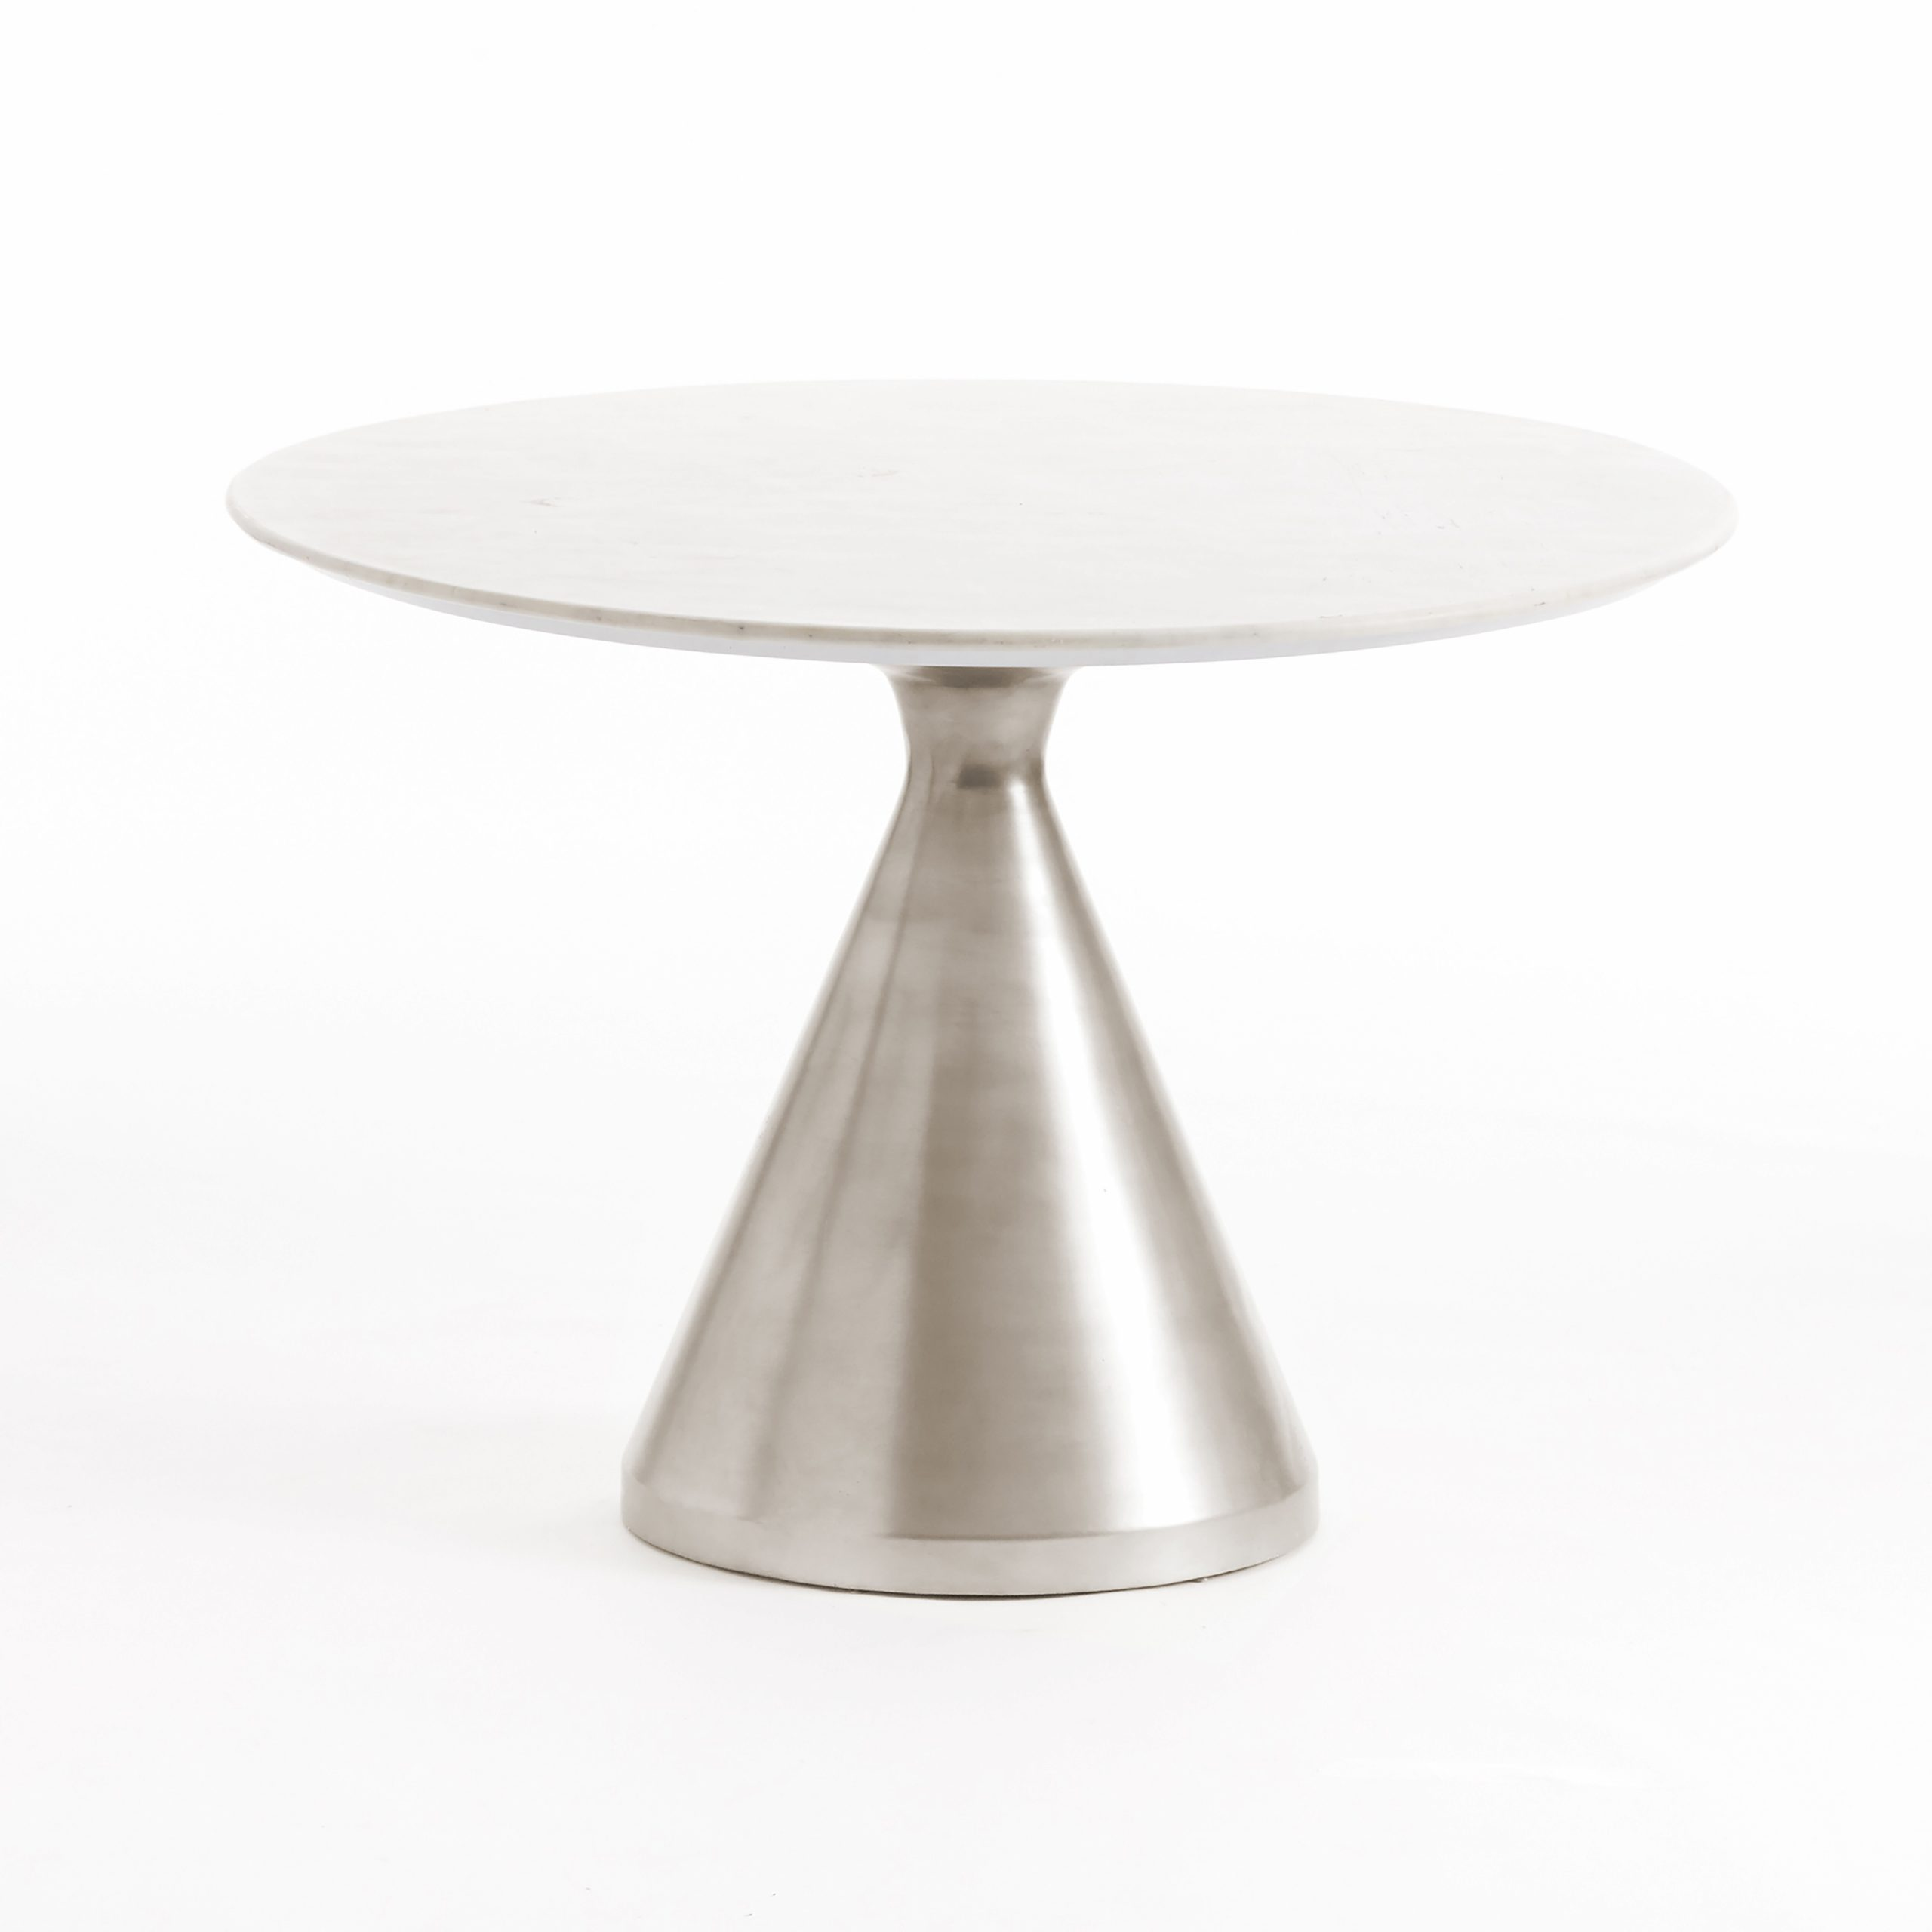 Blair Bistro Tables with Preferred Design Experts' Favorite Dining Tables, From A Cozy Two